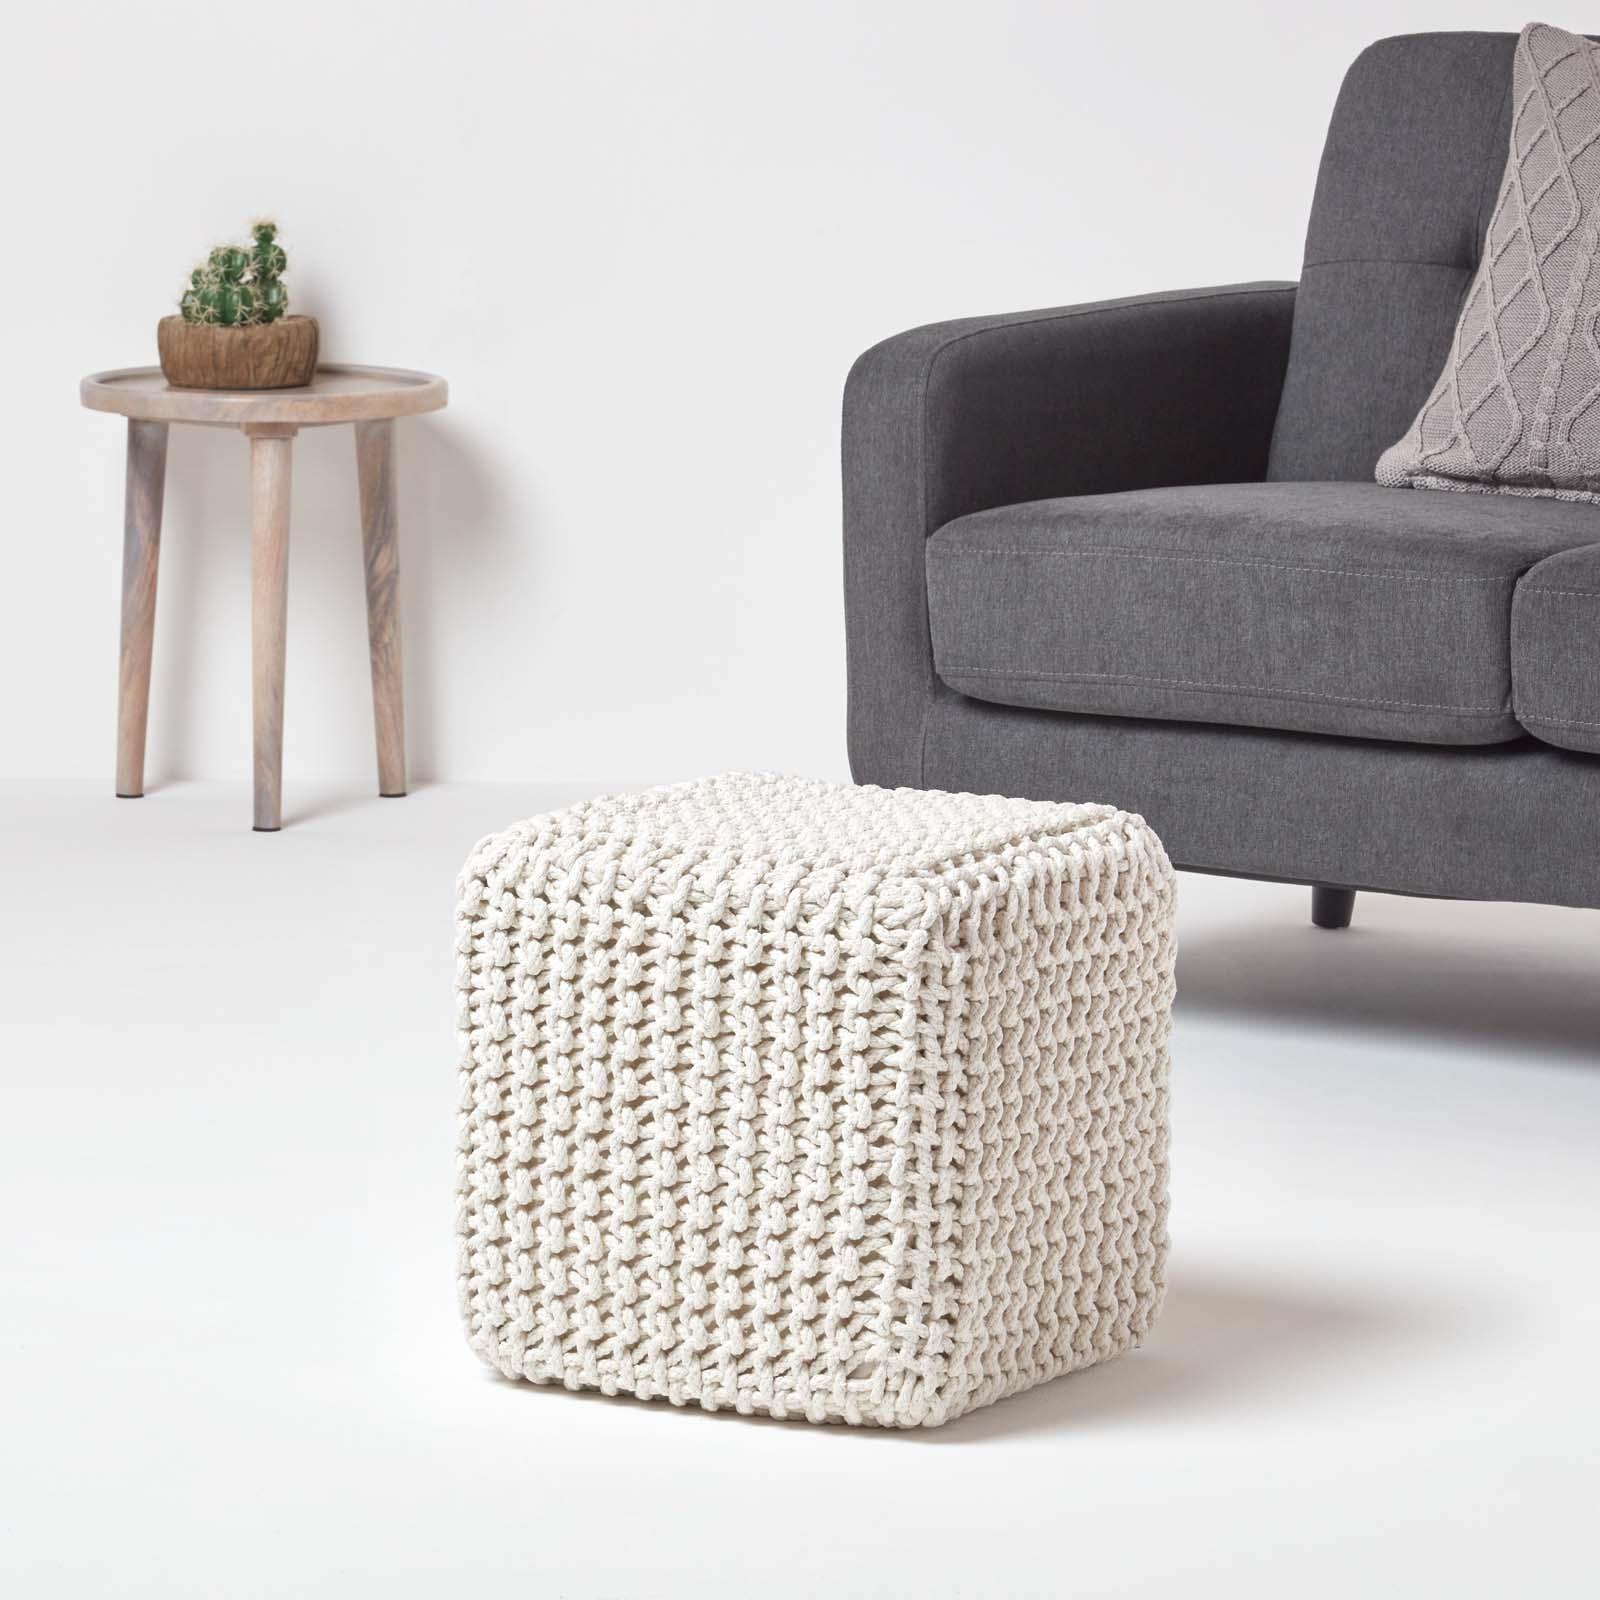 Hand-Knitted-100-Cotton-Pouffes-Round-Sphere-Or-Cube-Square-Chunky-Footstools thumbnail 96